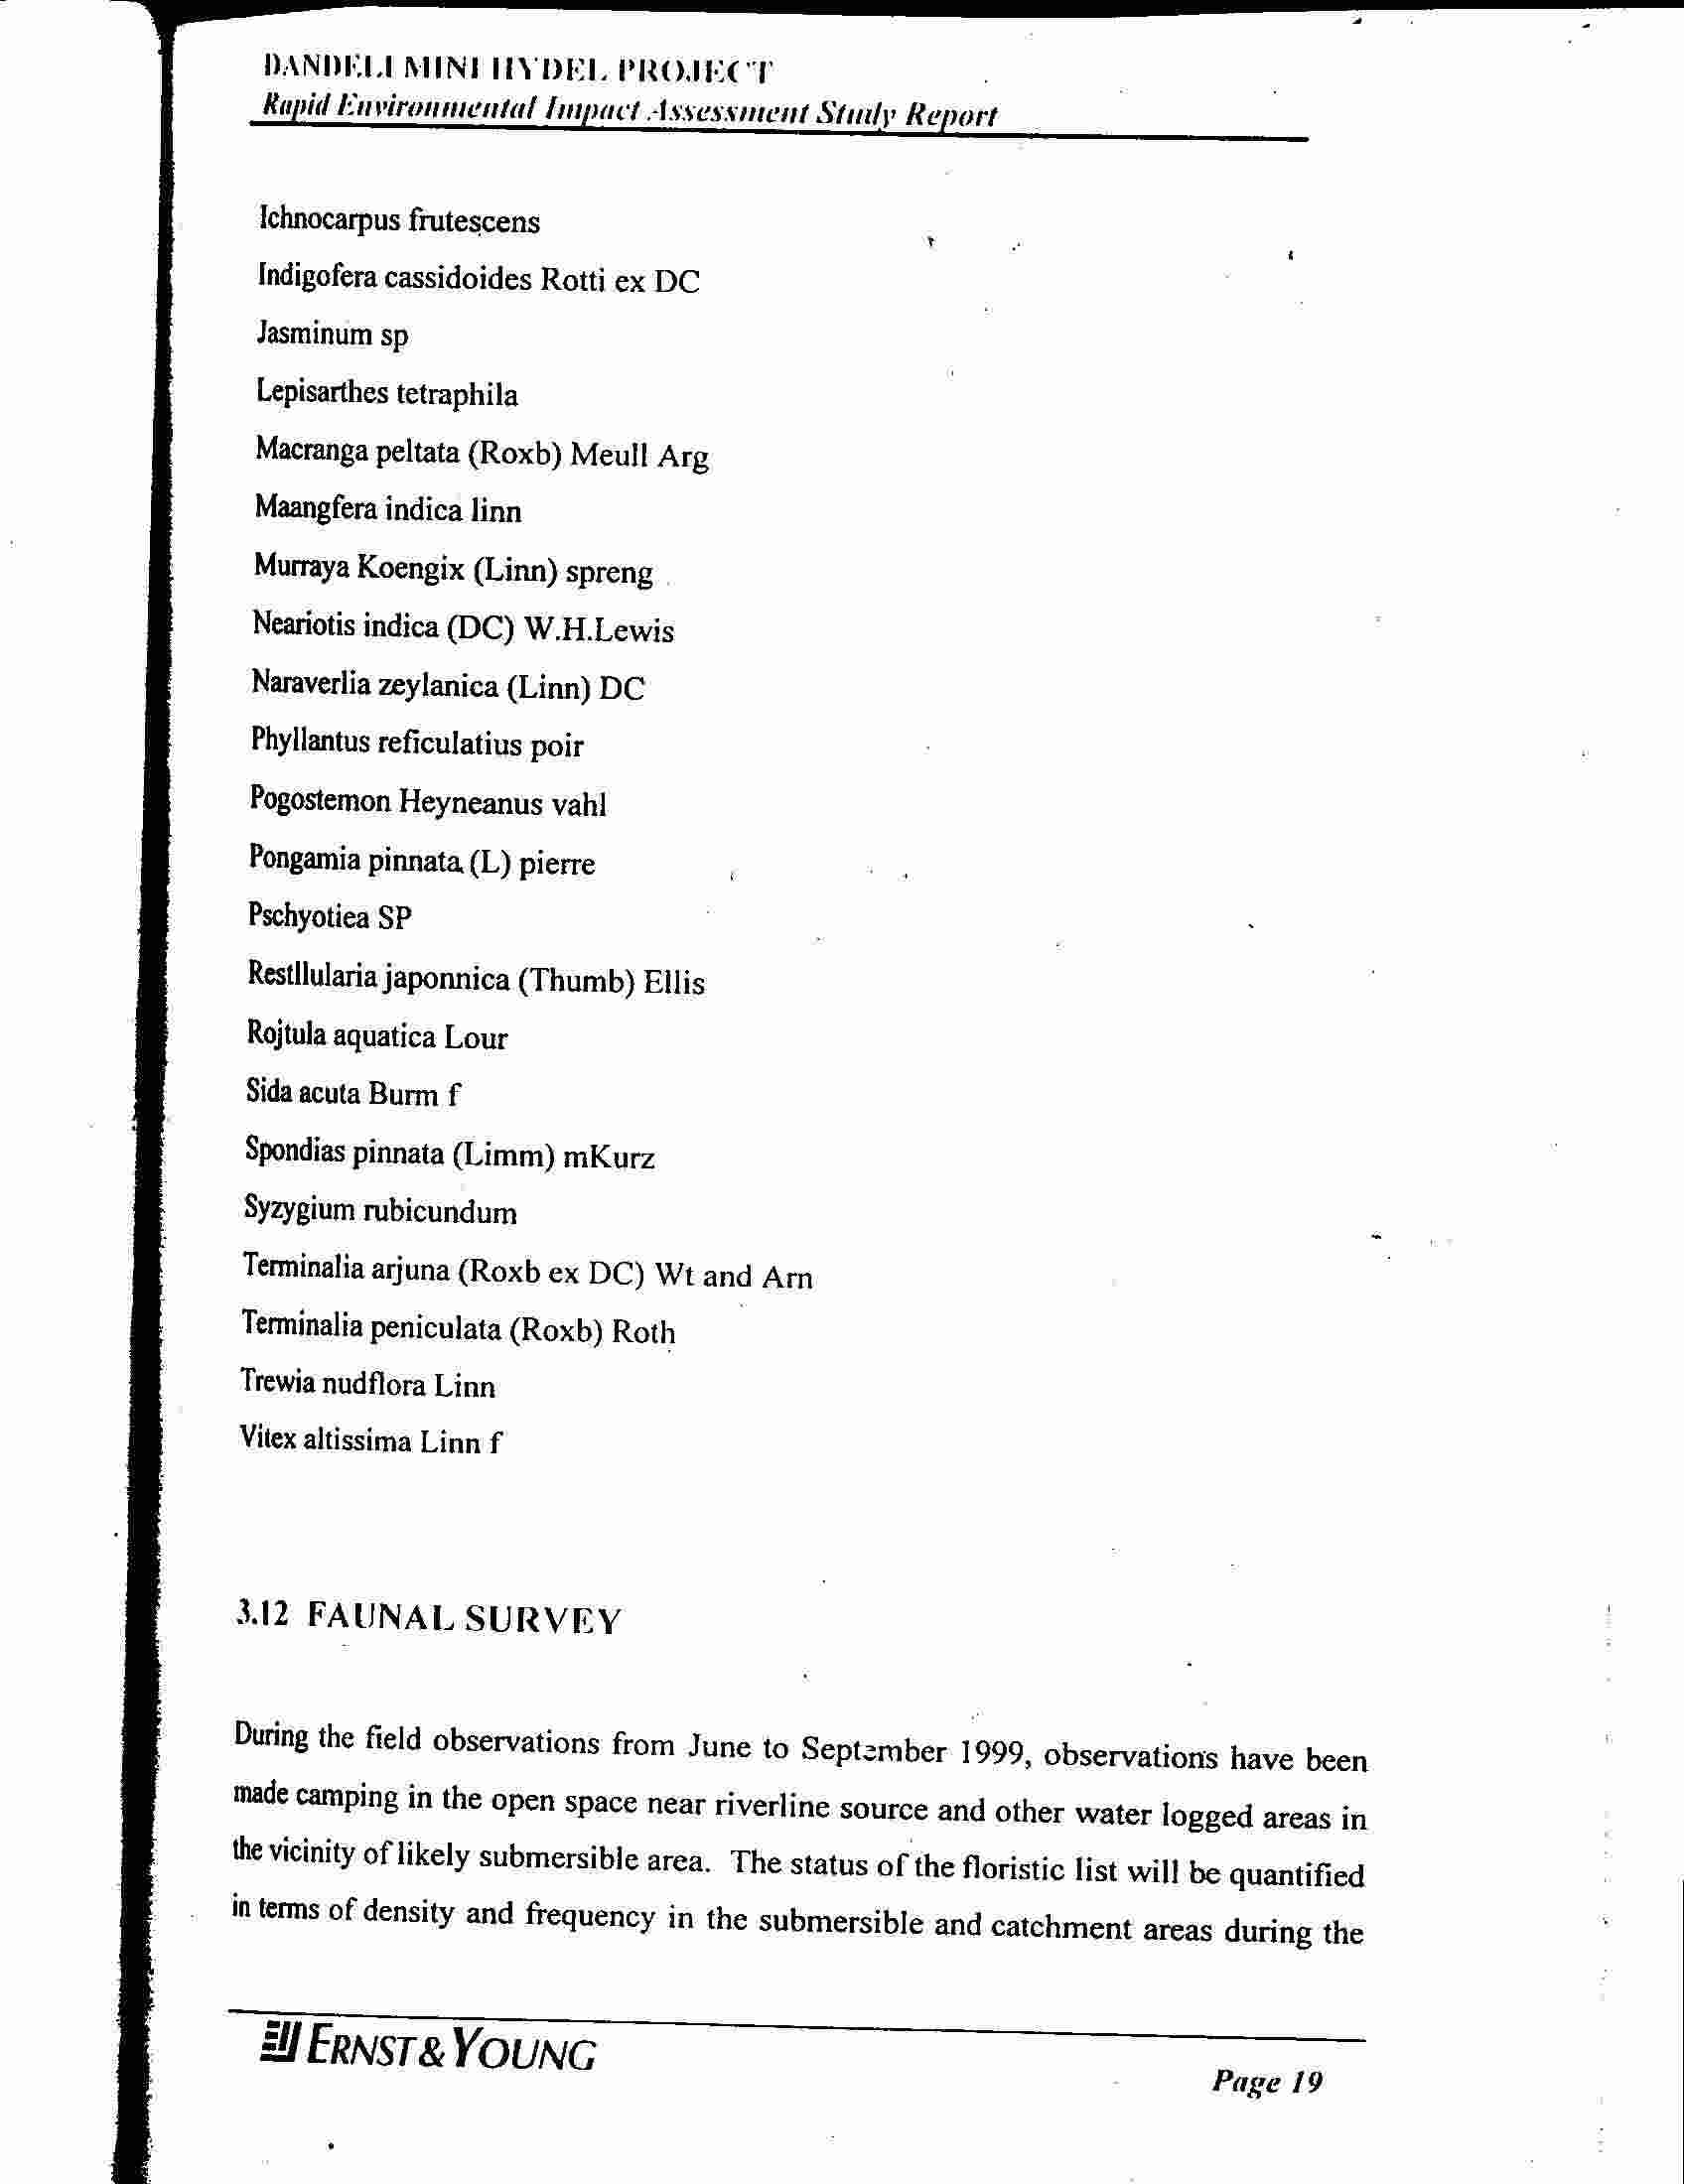 the dandeli eia fraud environment support group dmh plant list continued